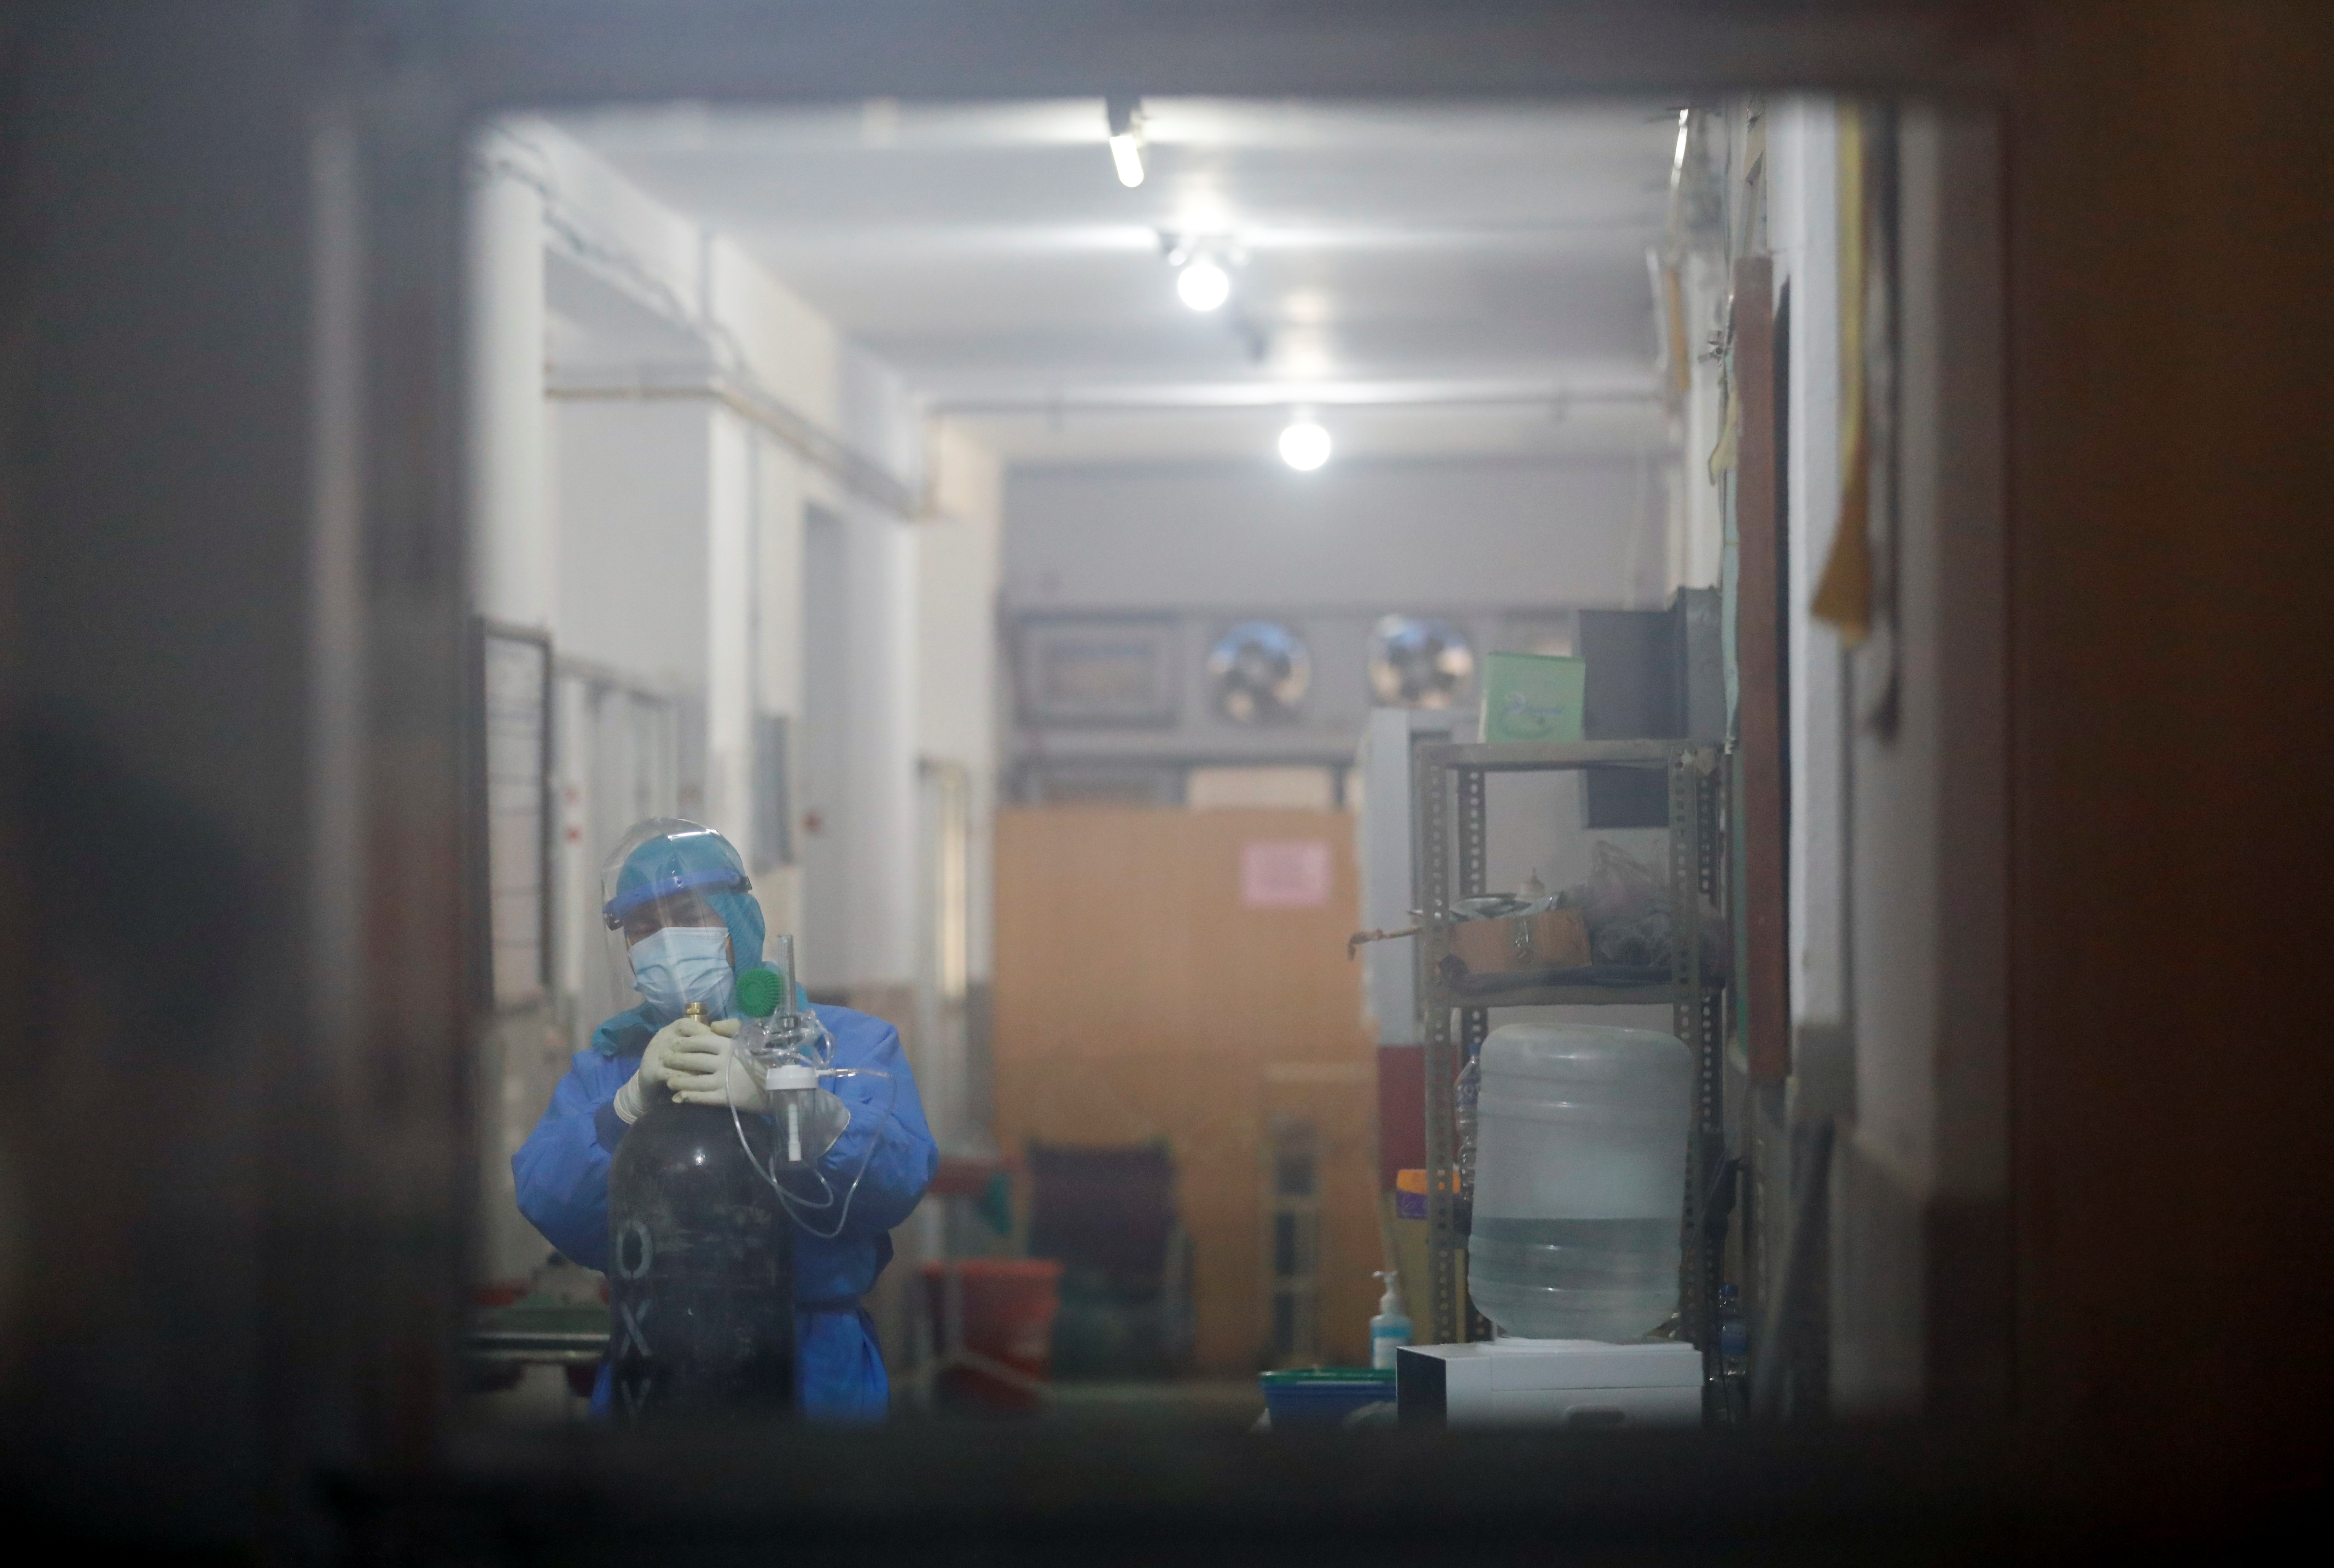 A health worker wearing personal protective equipment (PPE) is seen through the window as he drags an oxygen cylinder towards the COVID ward as the major second wave of the coronavirus disease (COVID-19) surges in Kathmandu, Nepal April 26, 2021. REUTERS/Navesh Chitrakar